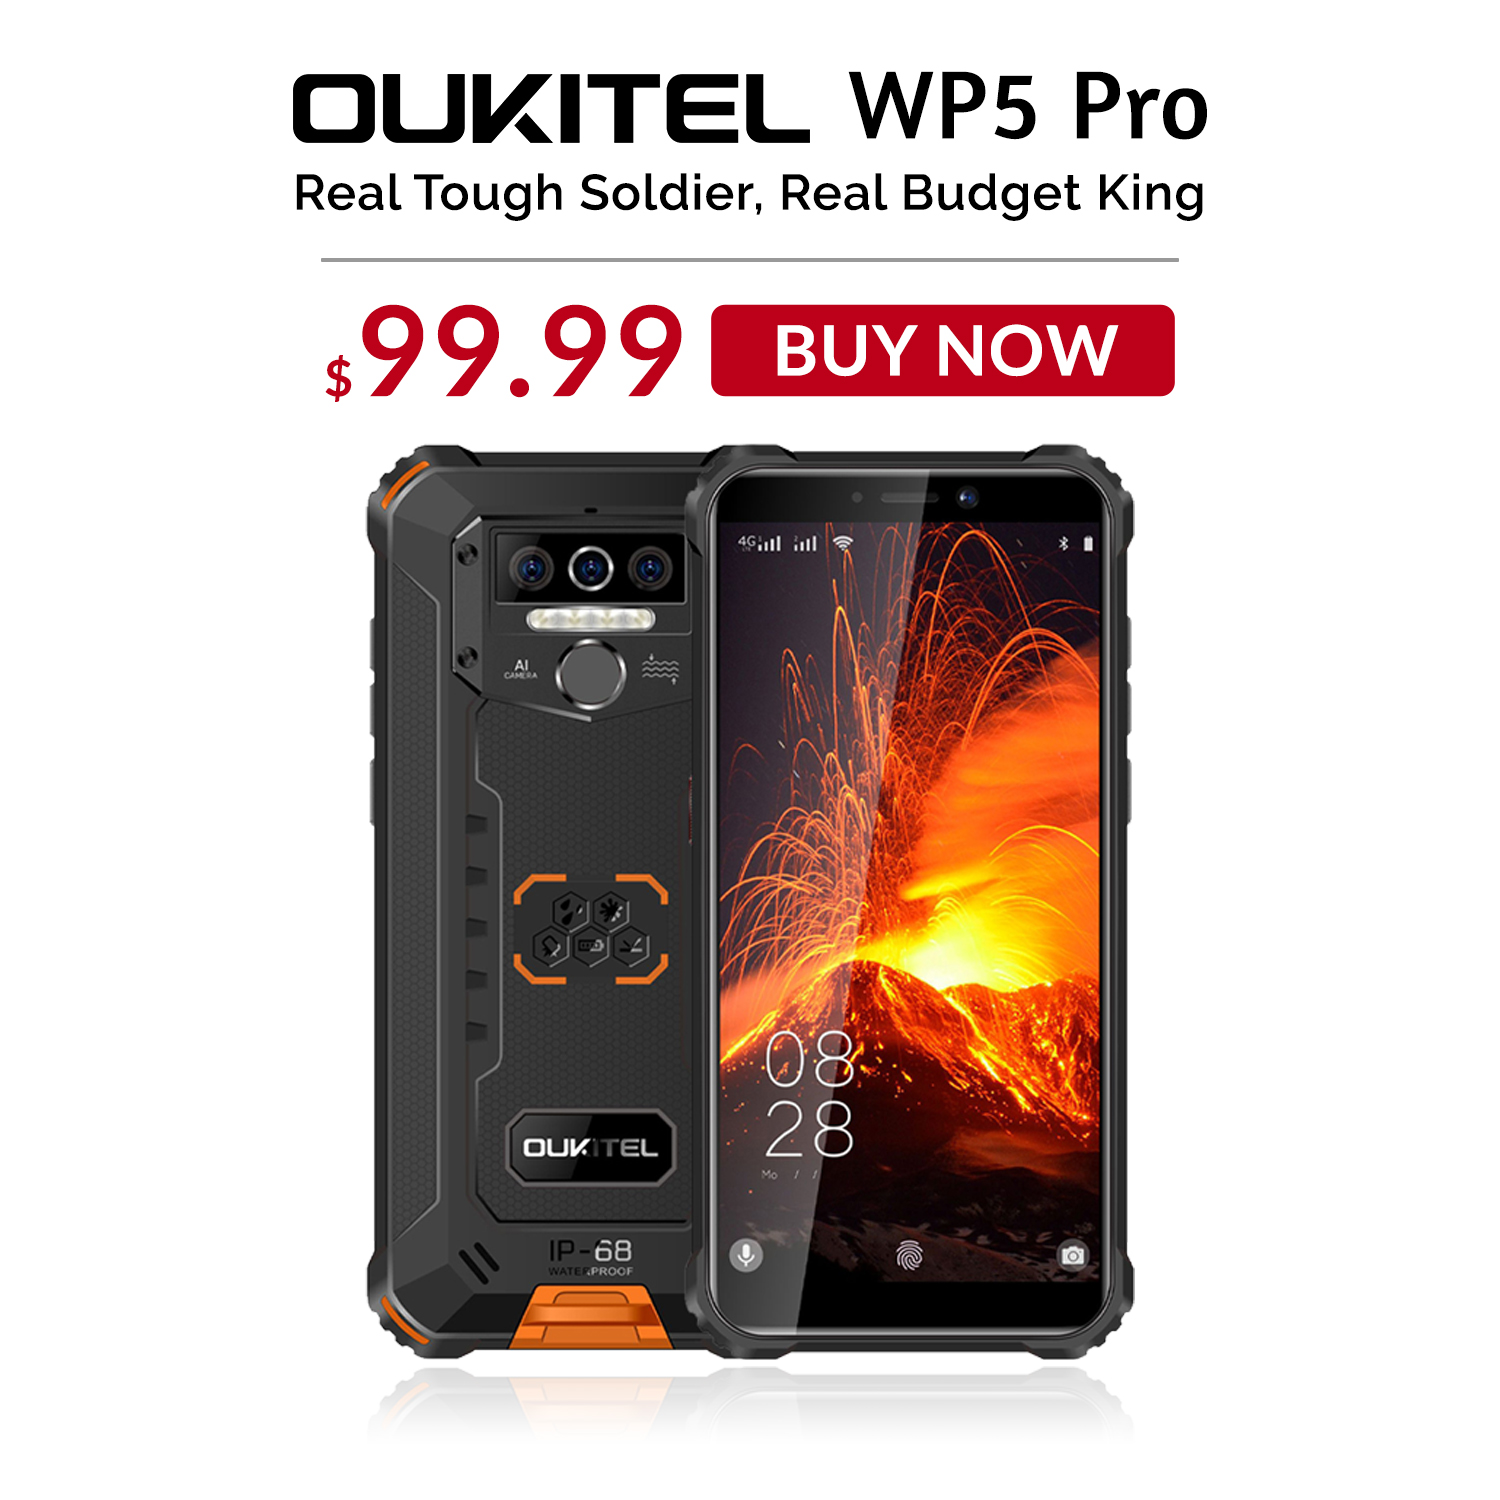 Stock going fast📣📣 Get Real Budget King #OUKITEL #WP5Pro at $99.99 only. Don't miss this unbelievable price deal🔥...